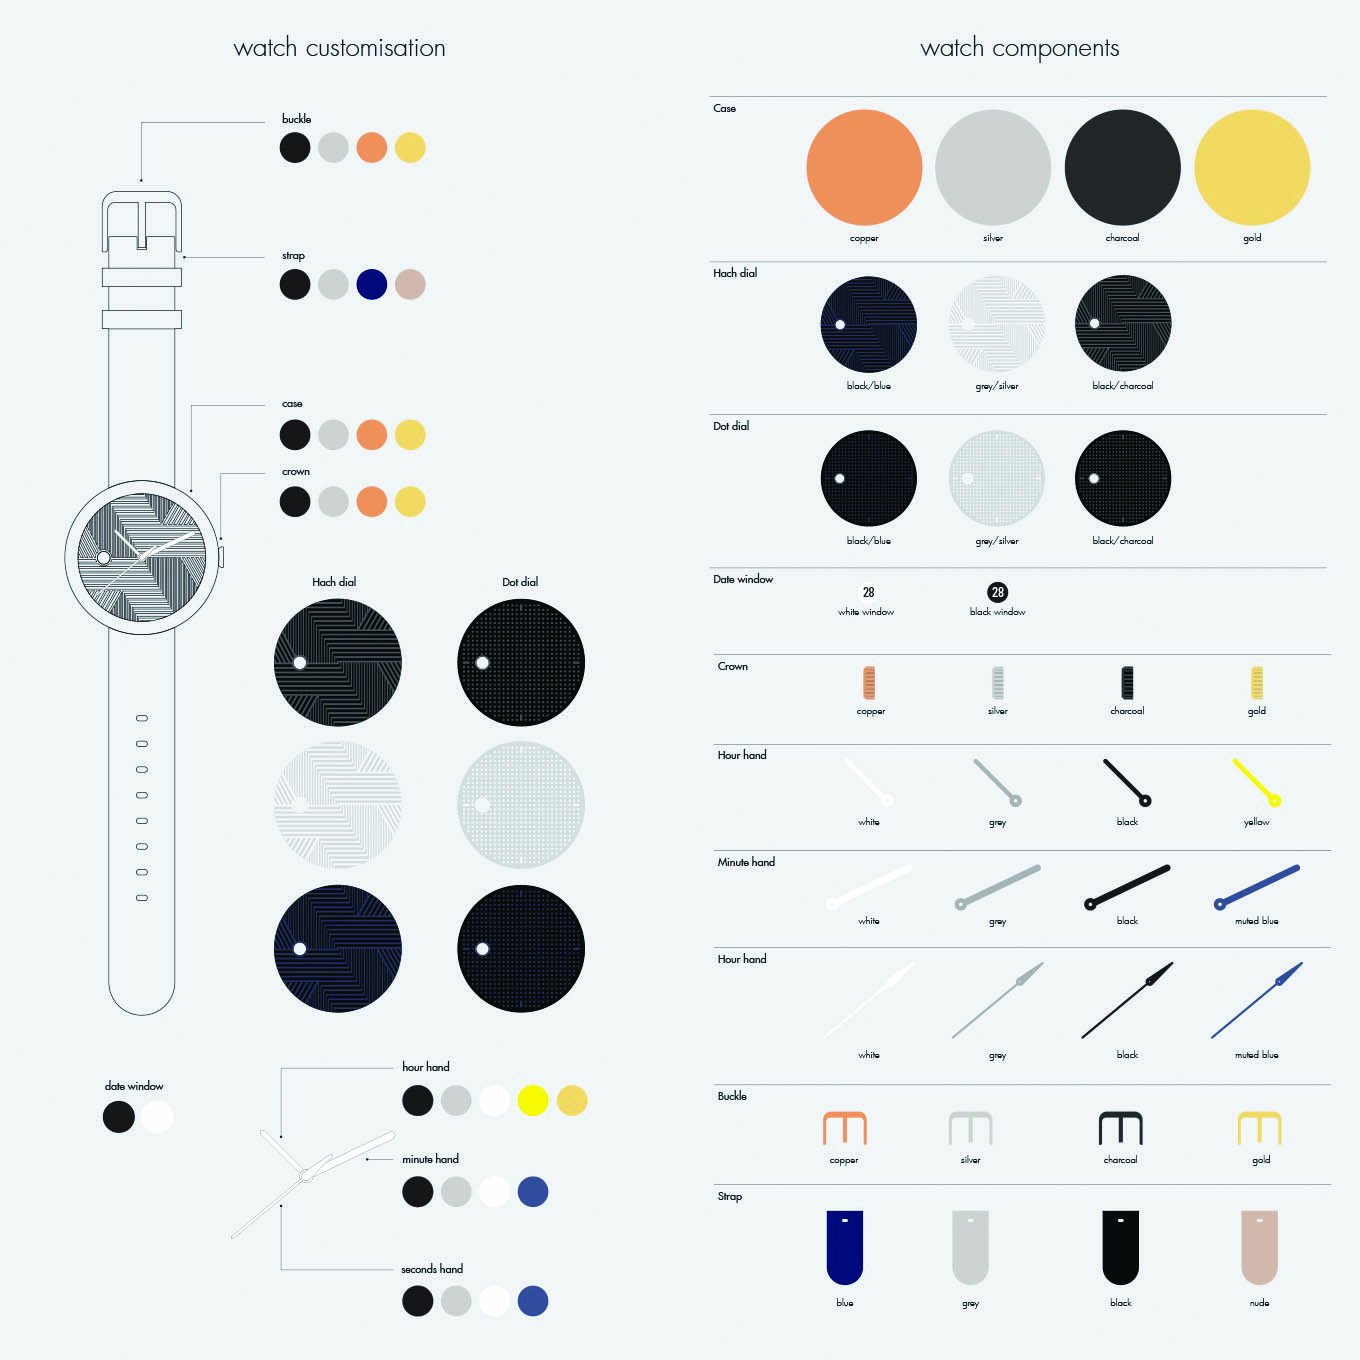 objest-automatic-customizable-watches